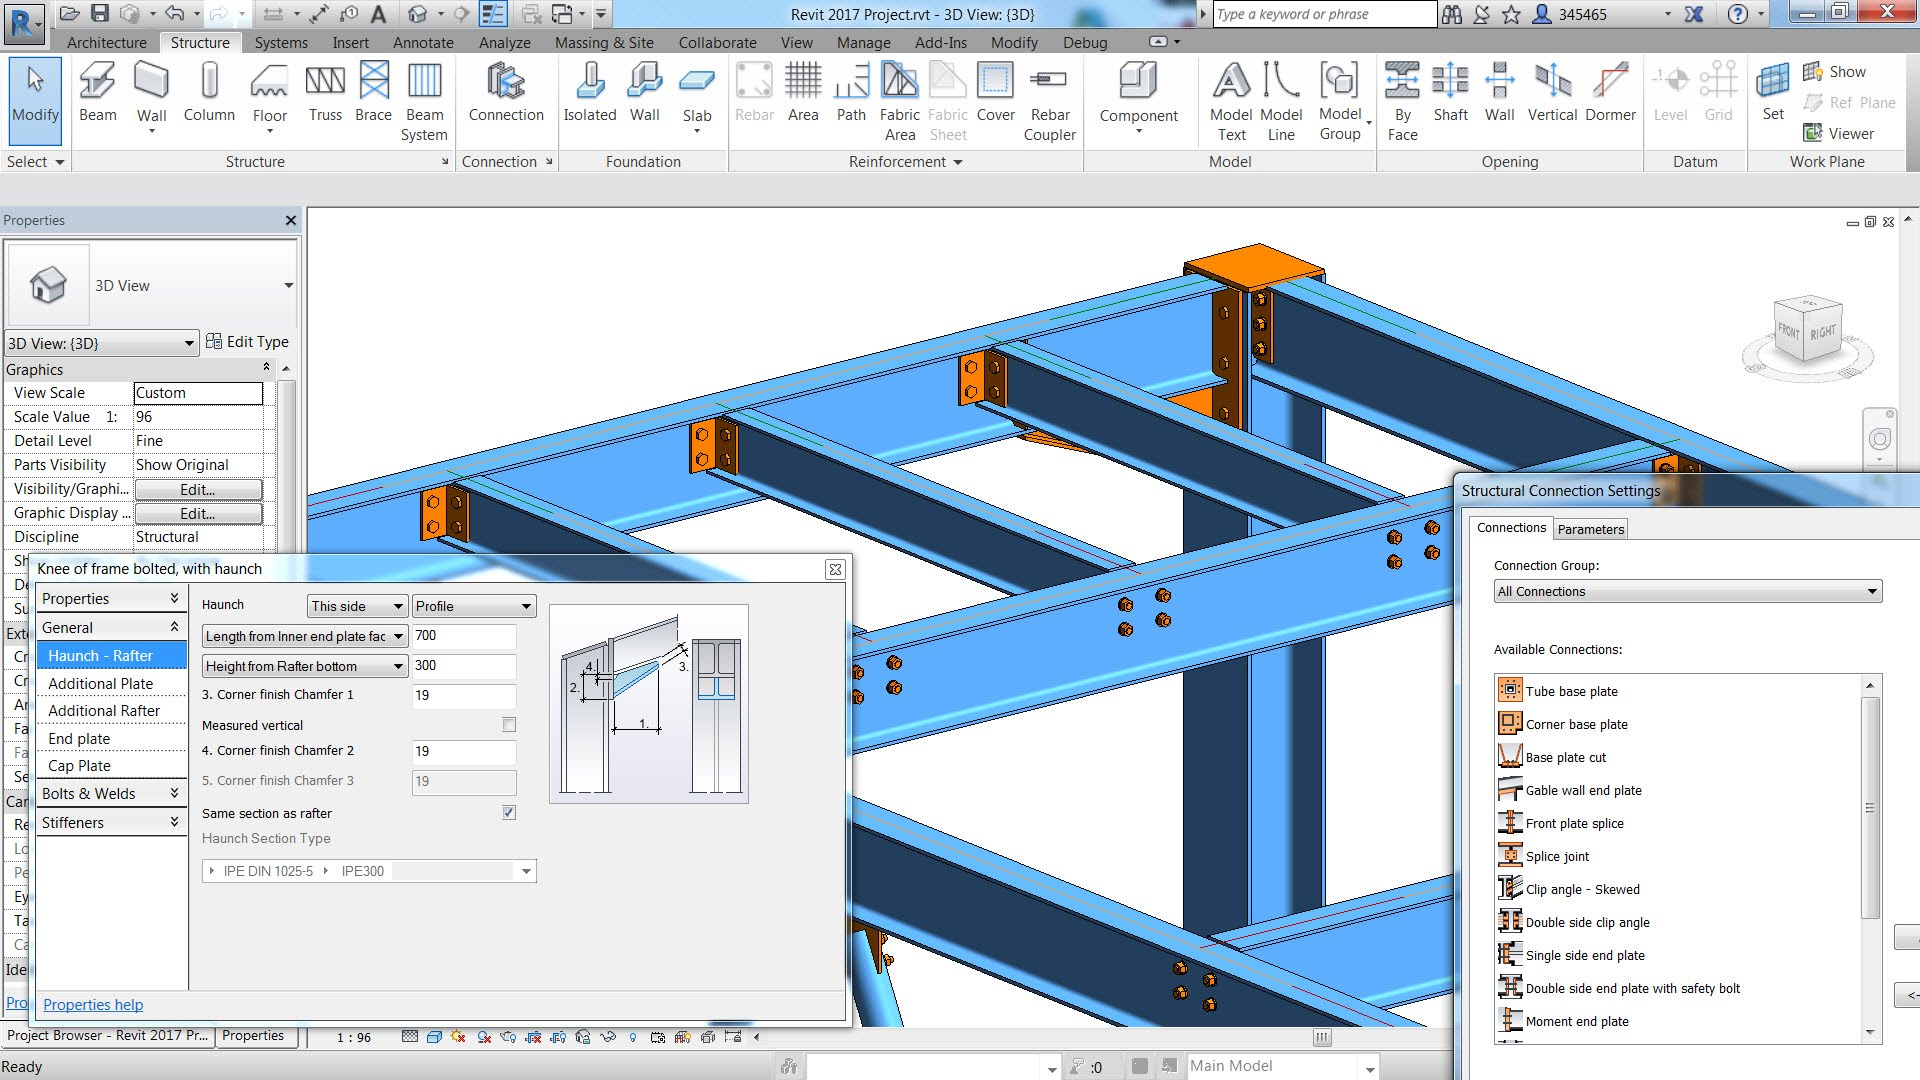 Softwares para engenharia: as vantagens de uso do AutoDesk Revit